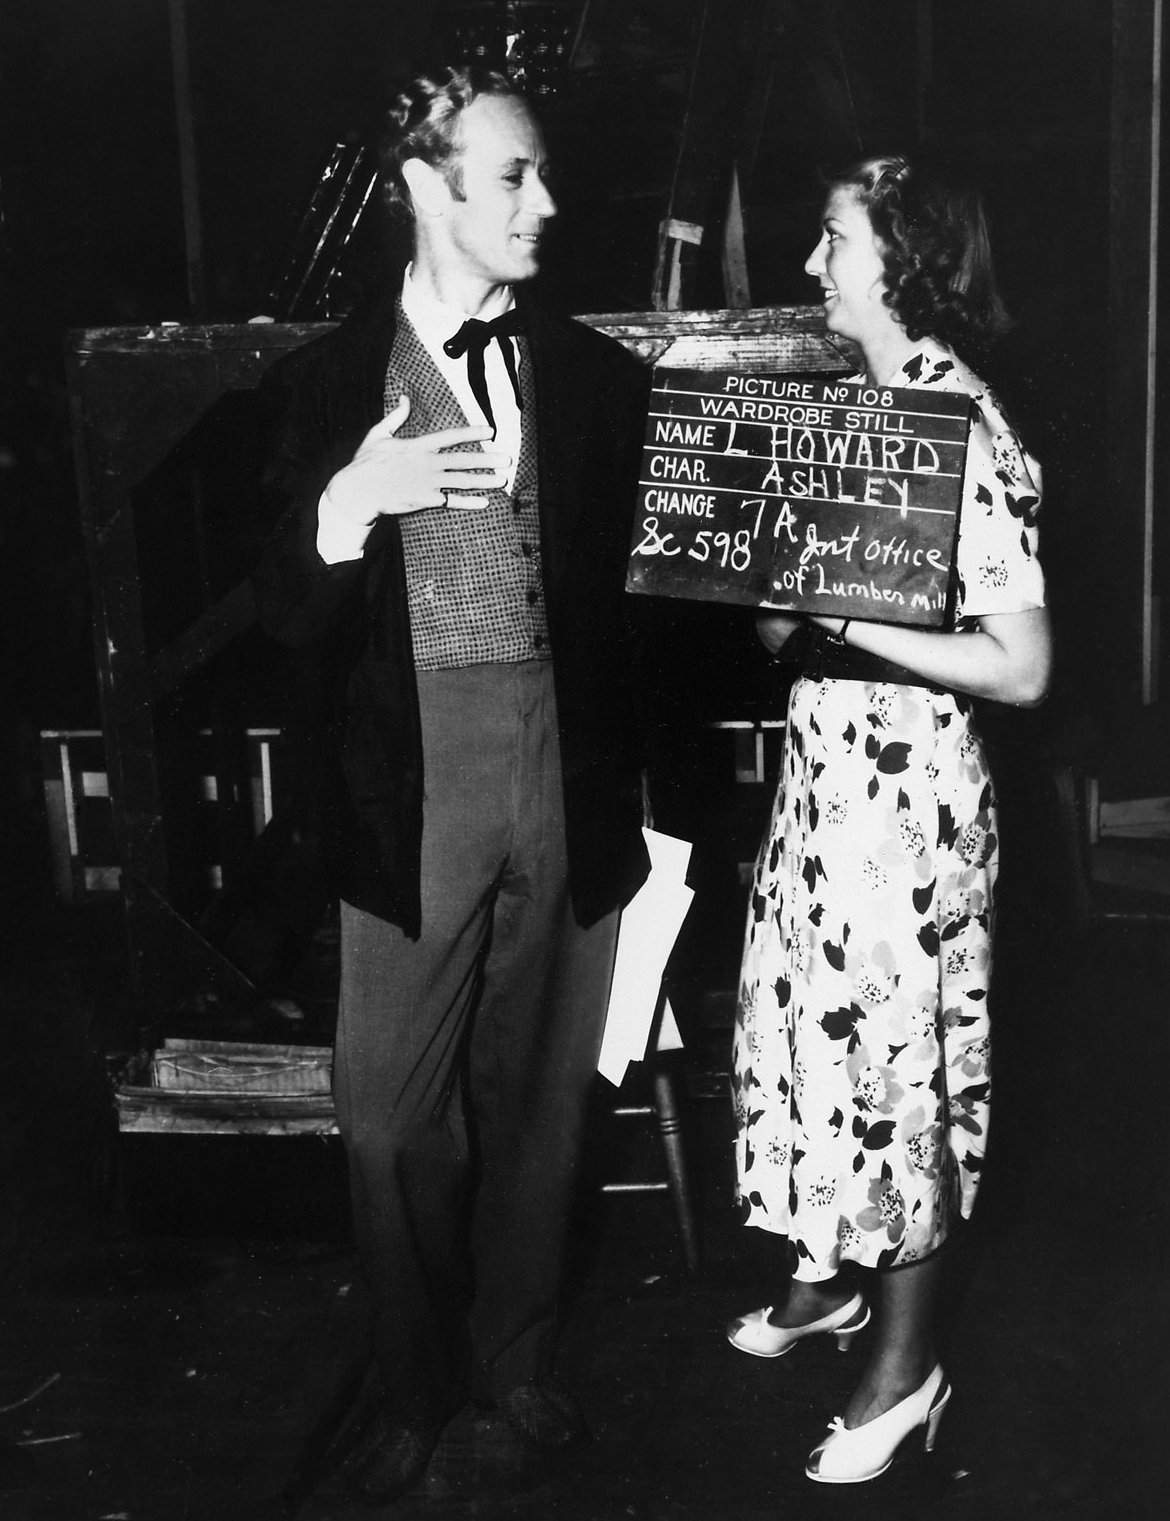 Leslie Howard, as Ashley Wilkes, on the set of Gone with the Wind in 1939.